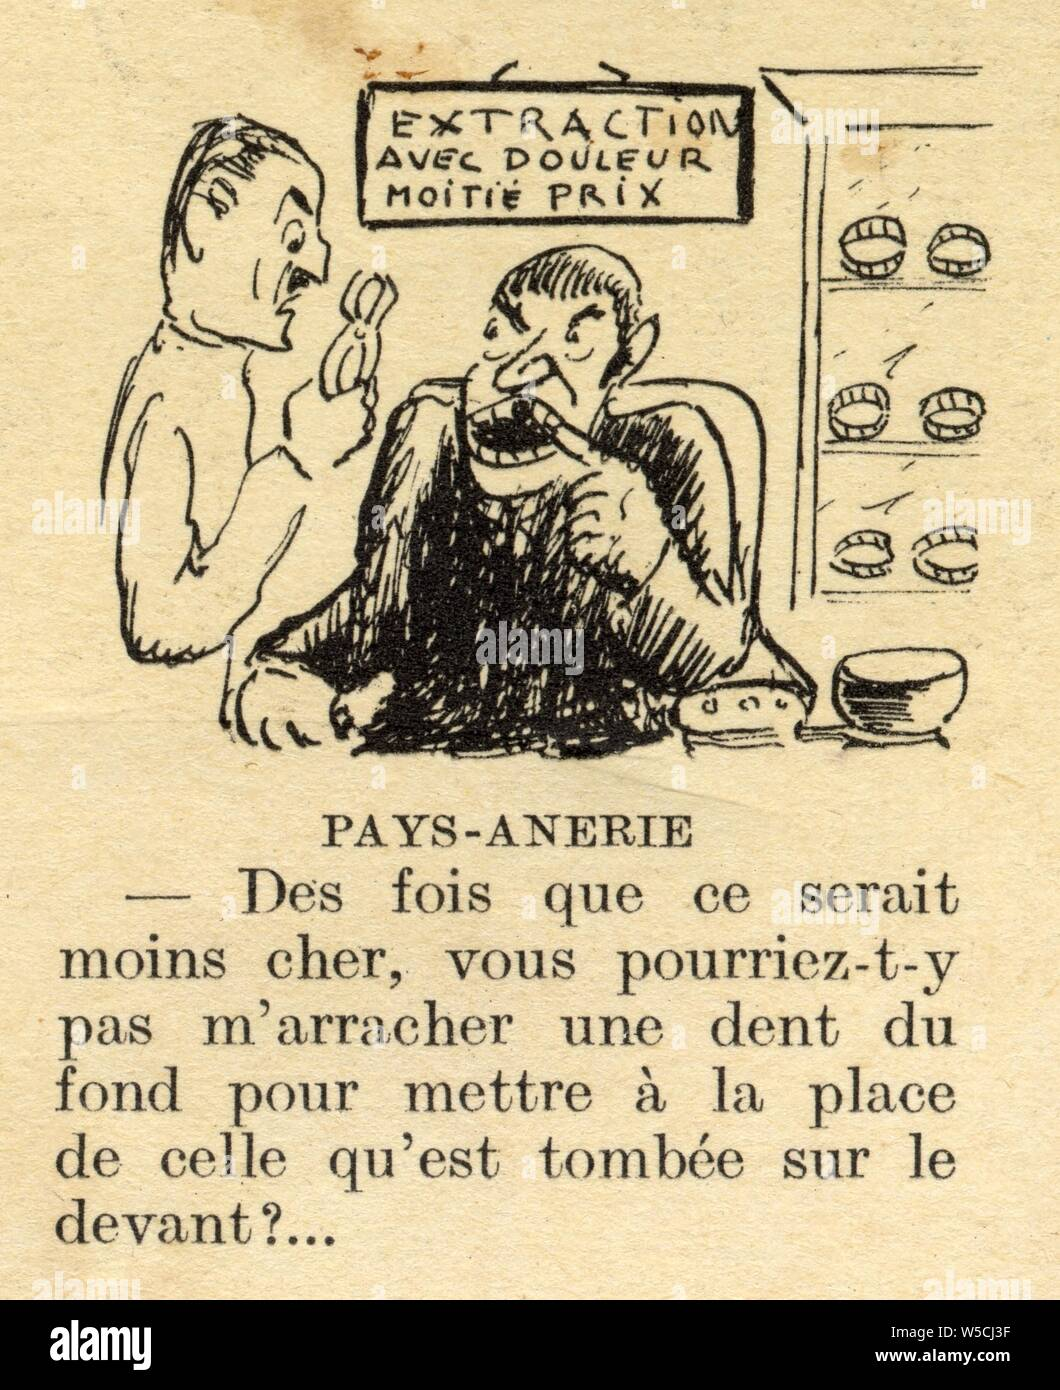 histoire drole.pays-anerie.1937 Stock Photo